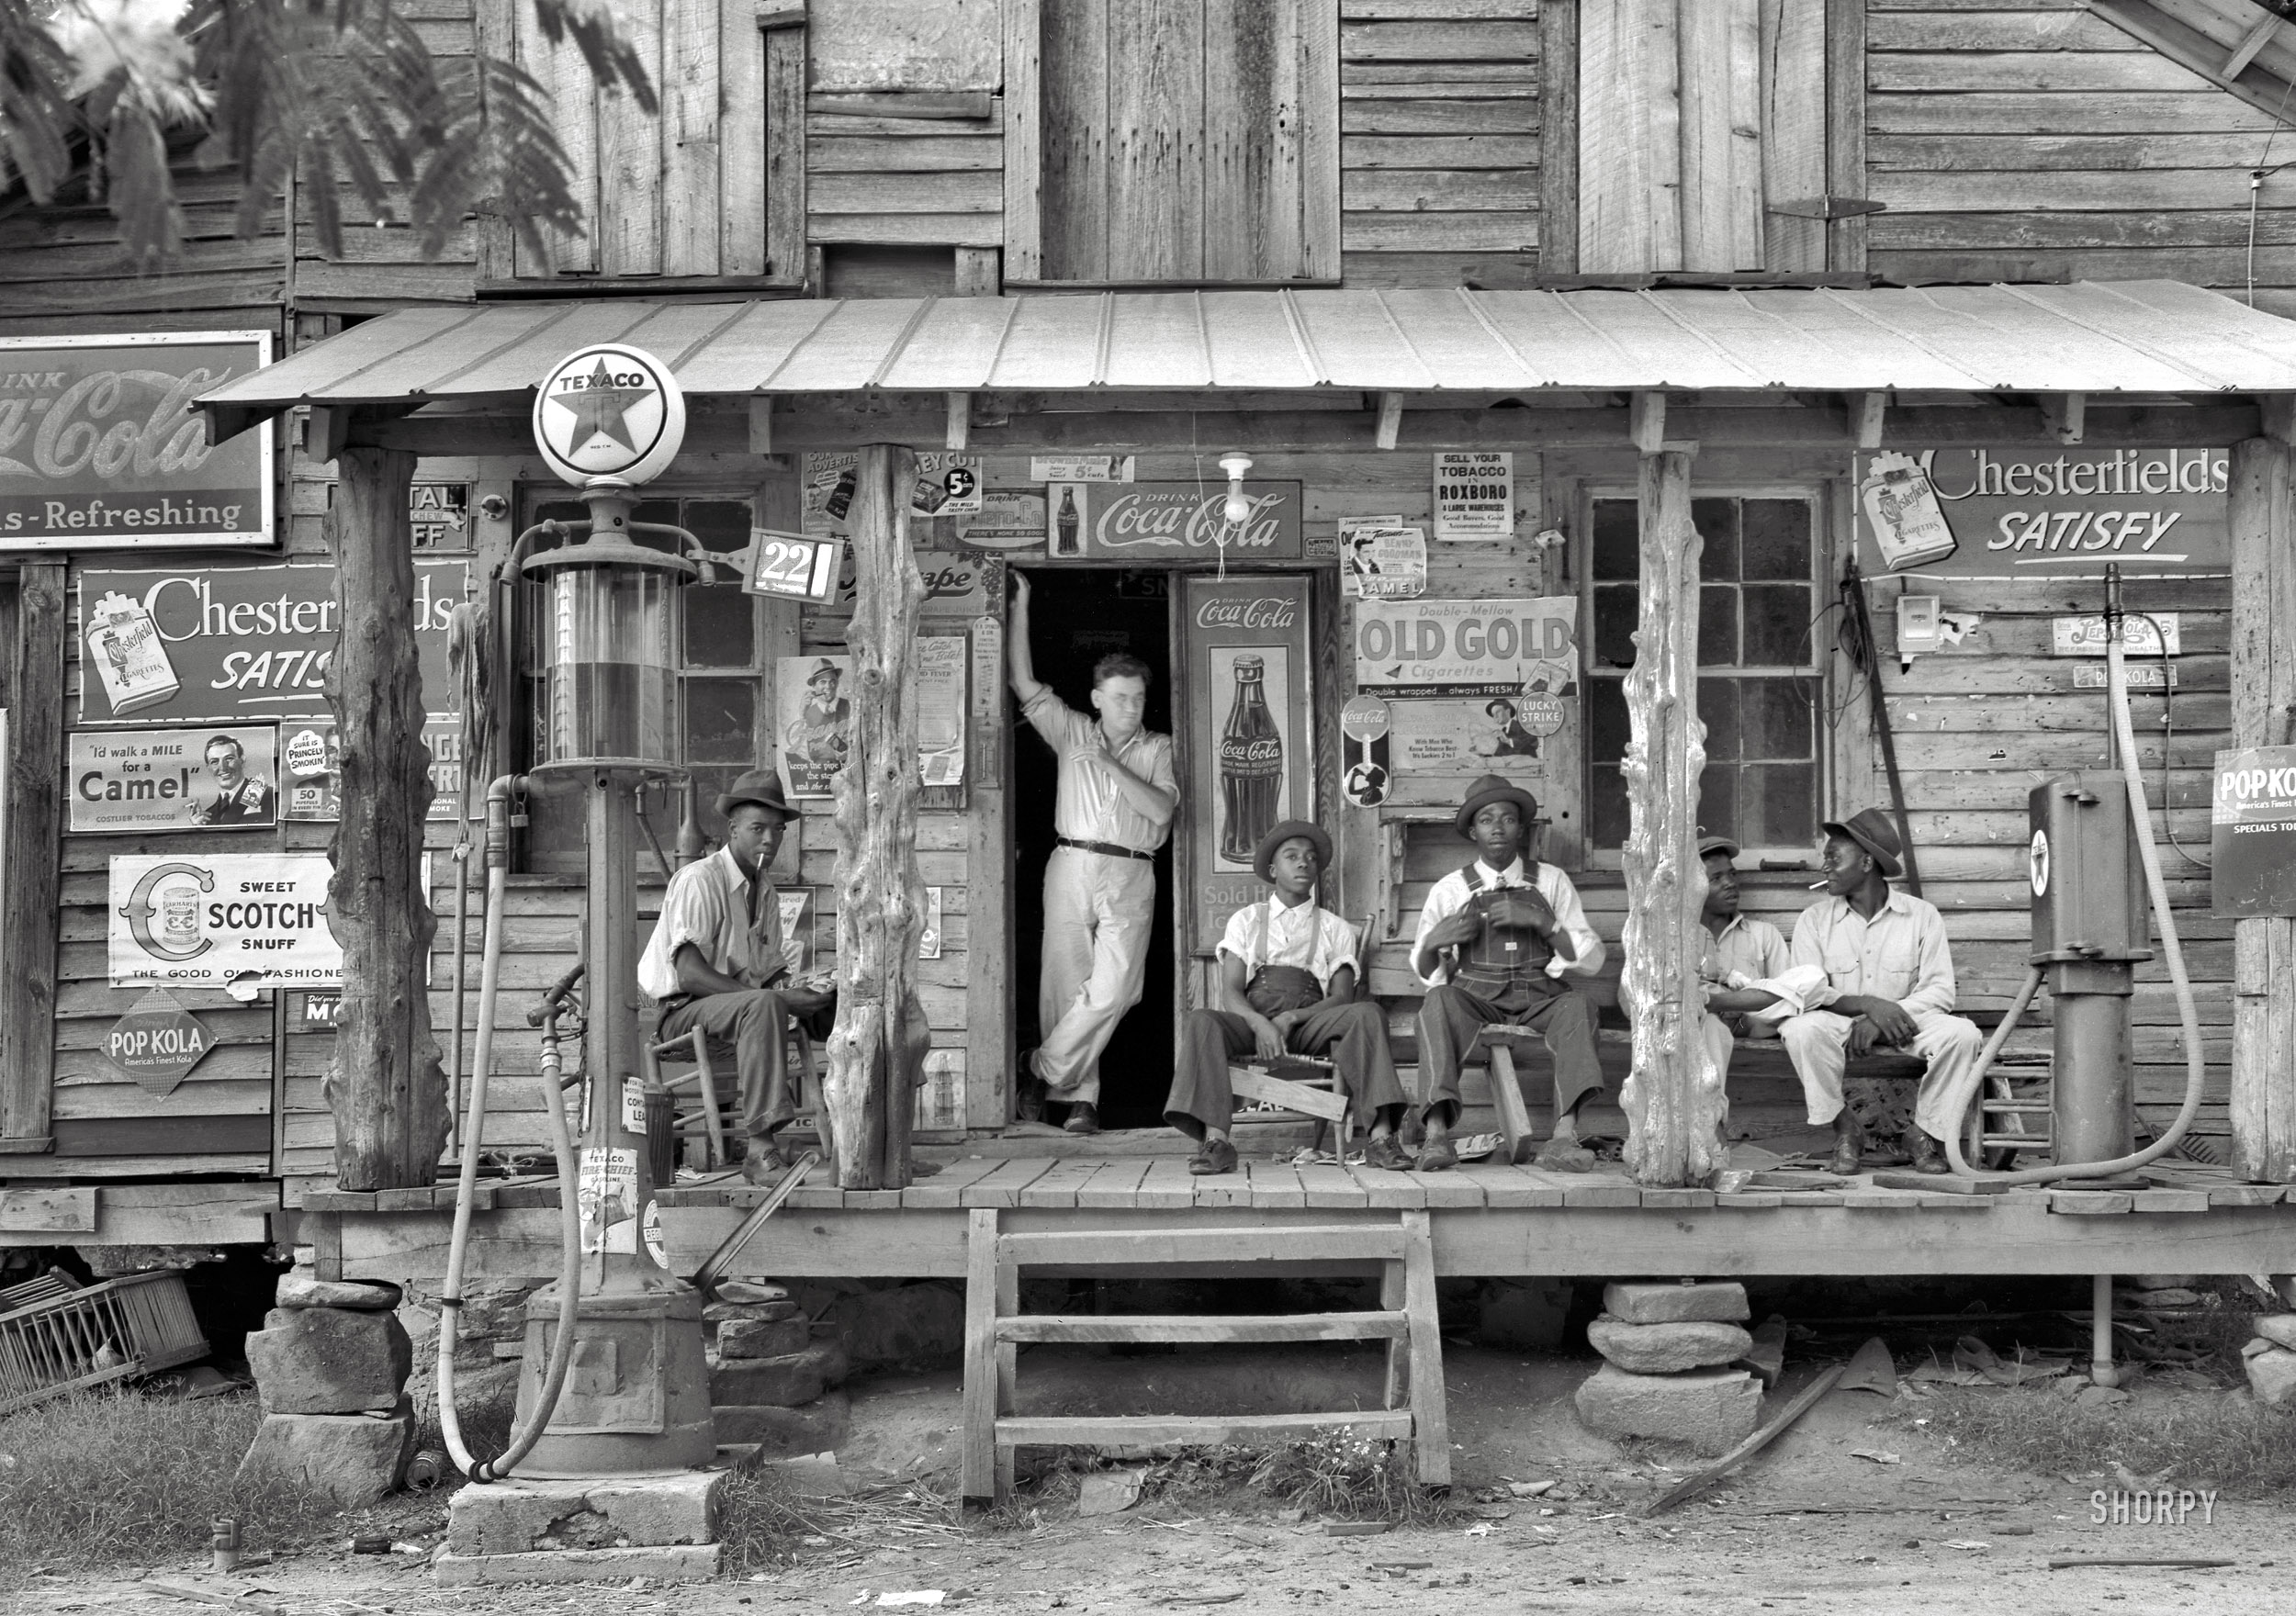 Pop Kola: 1939 | Shorpy Historical Photo Archive